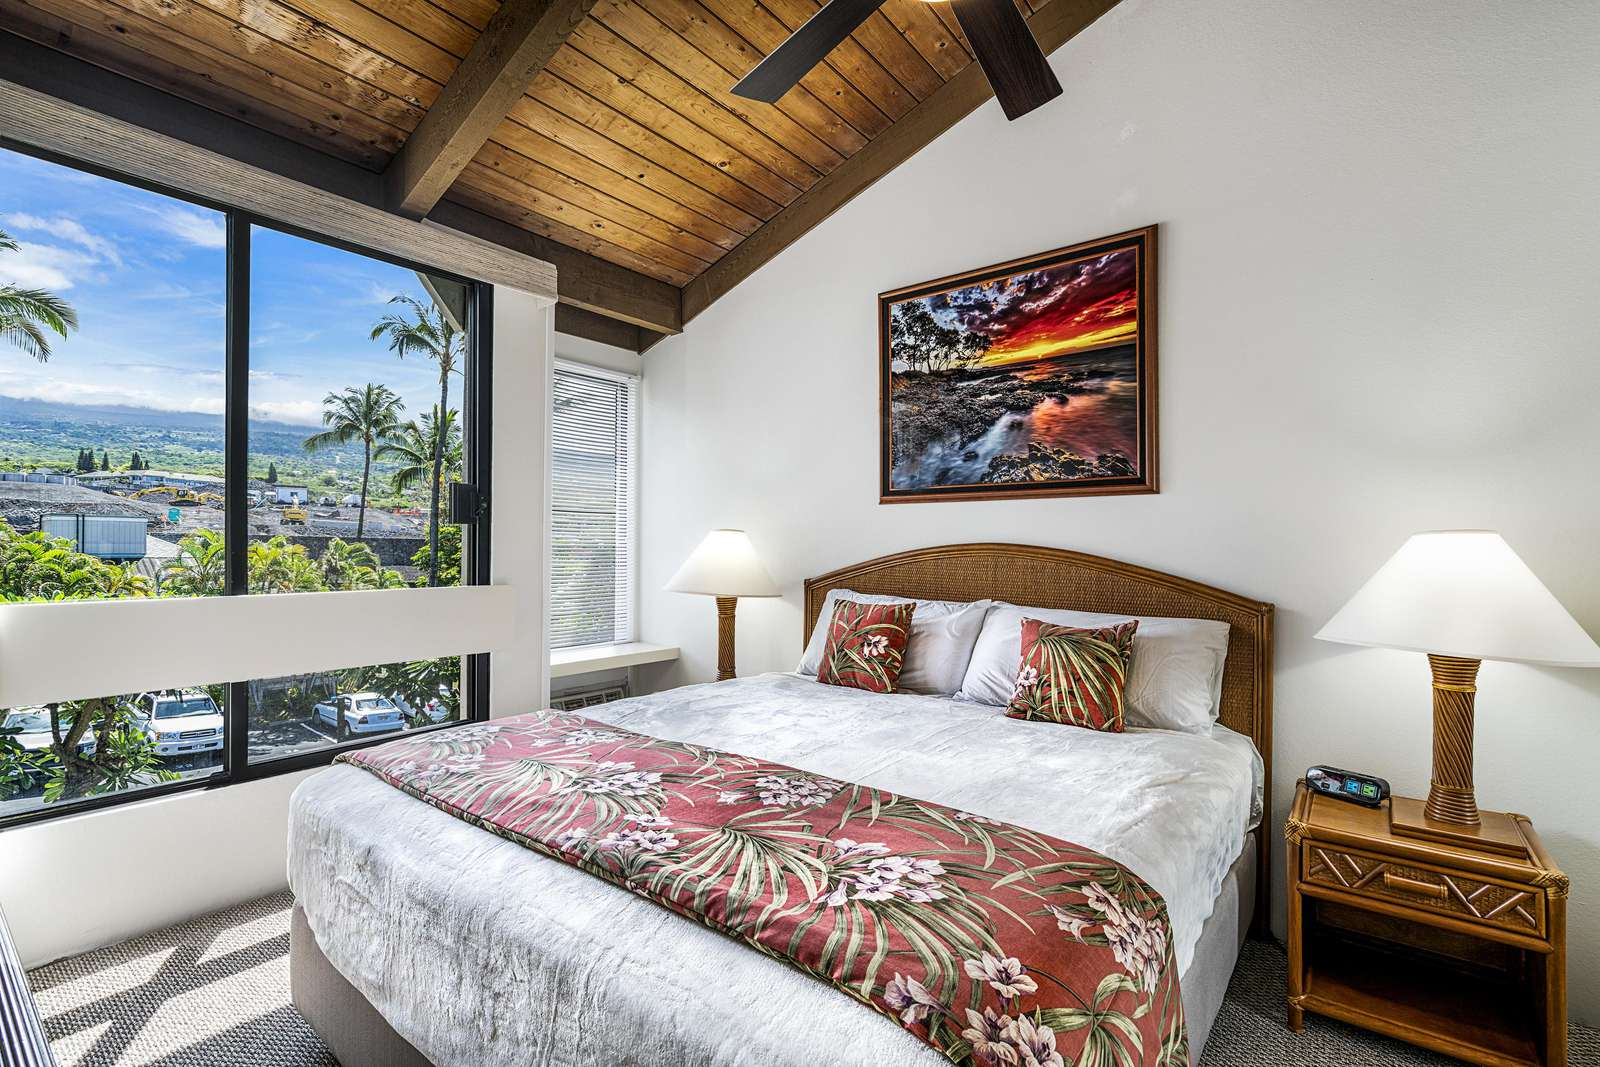 Master bedroom on main level has a Cal King bed.